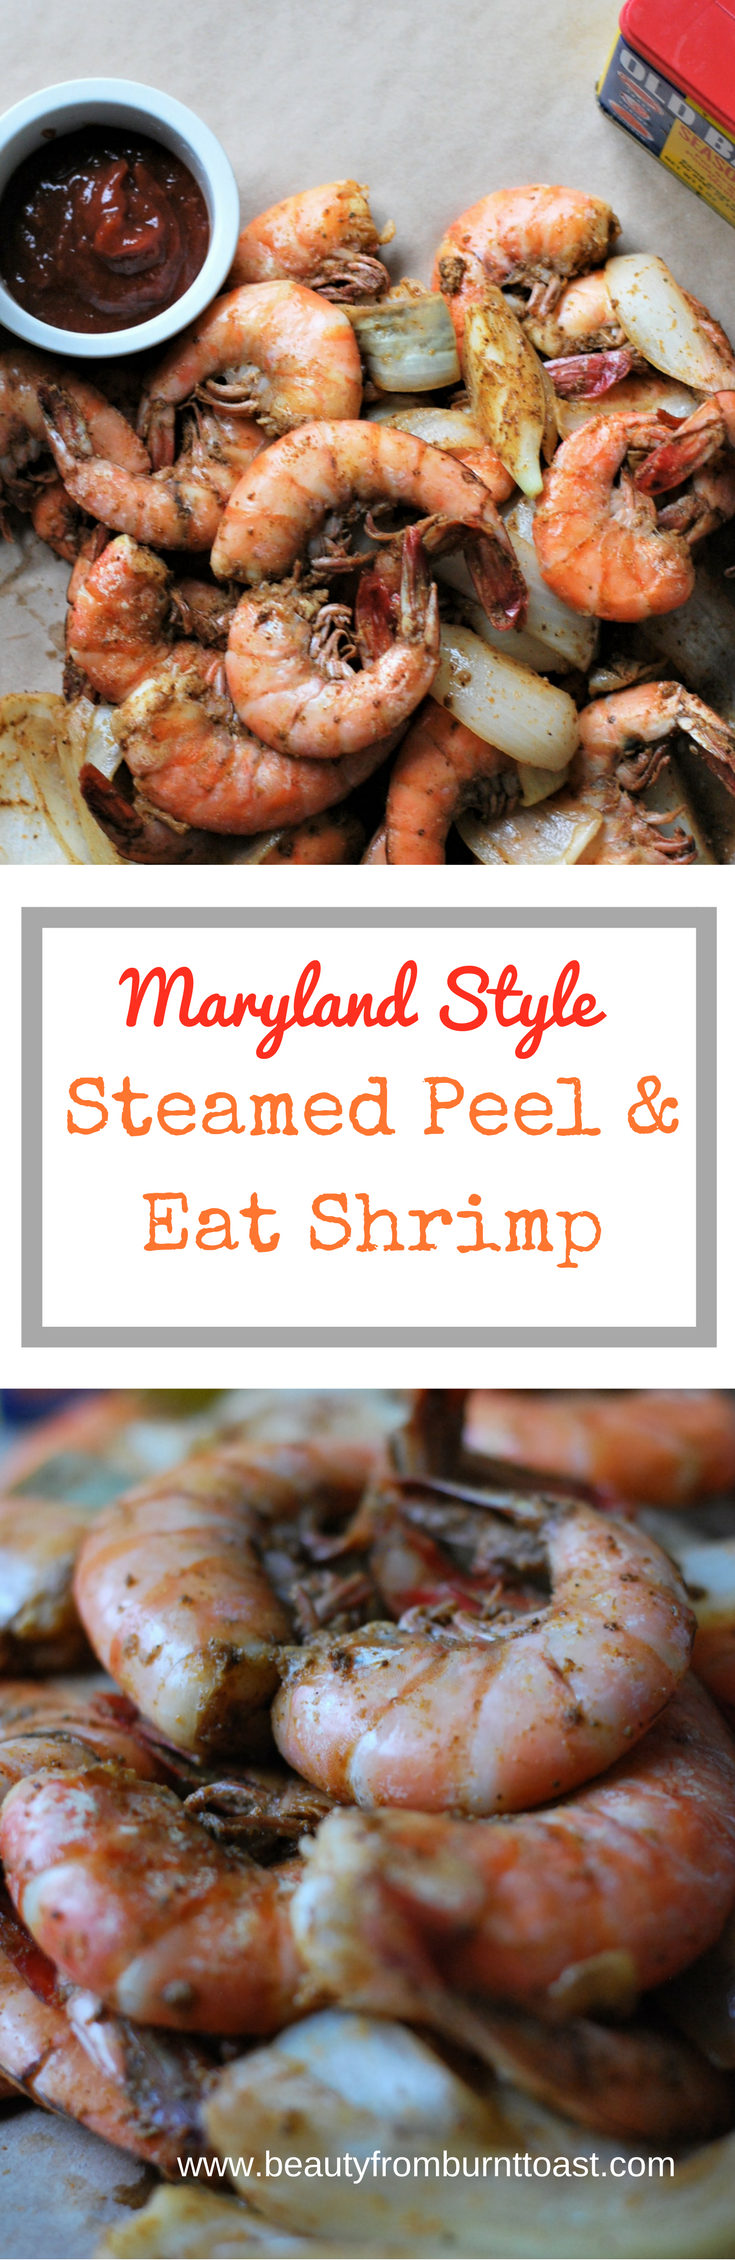 Maryland Style Steamed Peel and Eat Shrimp